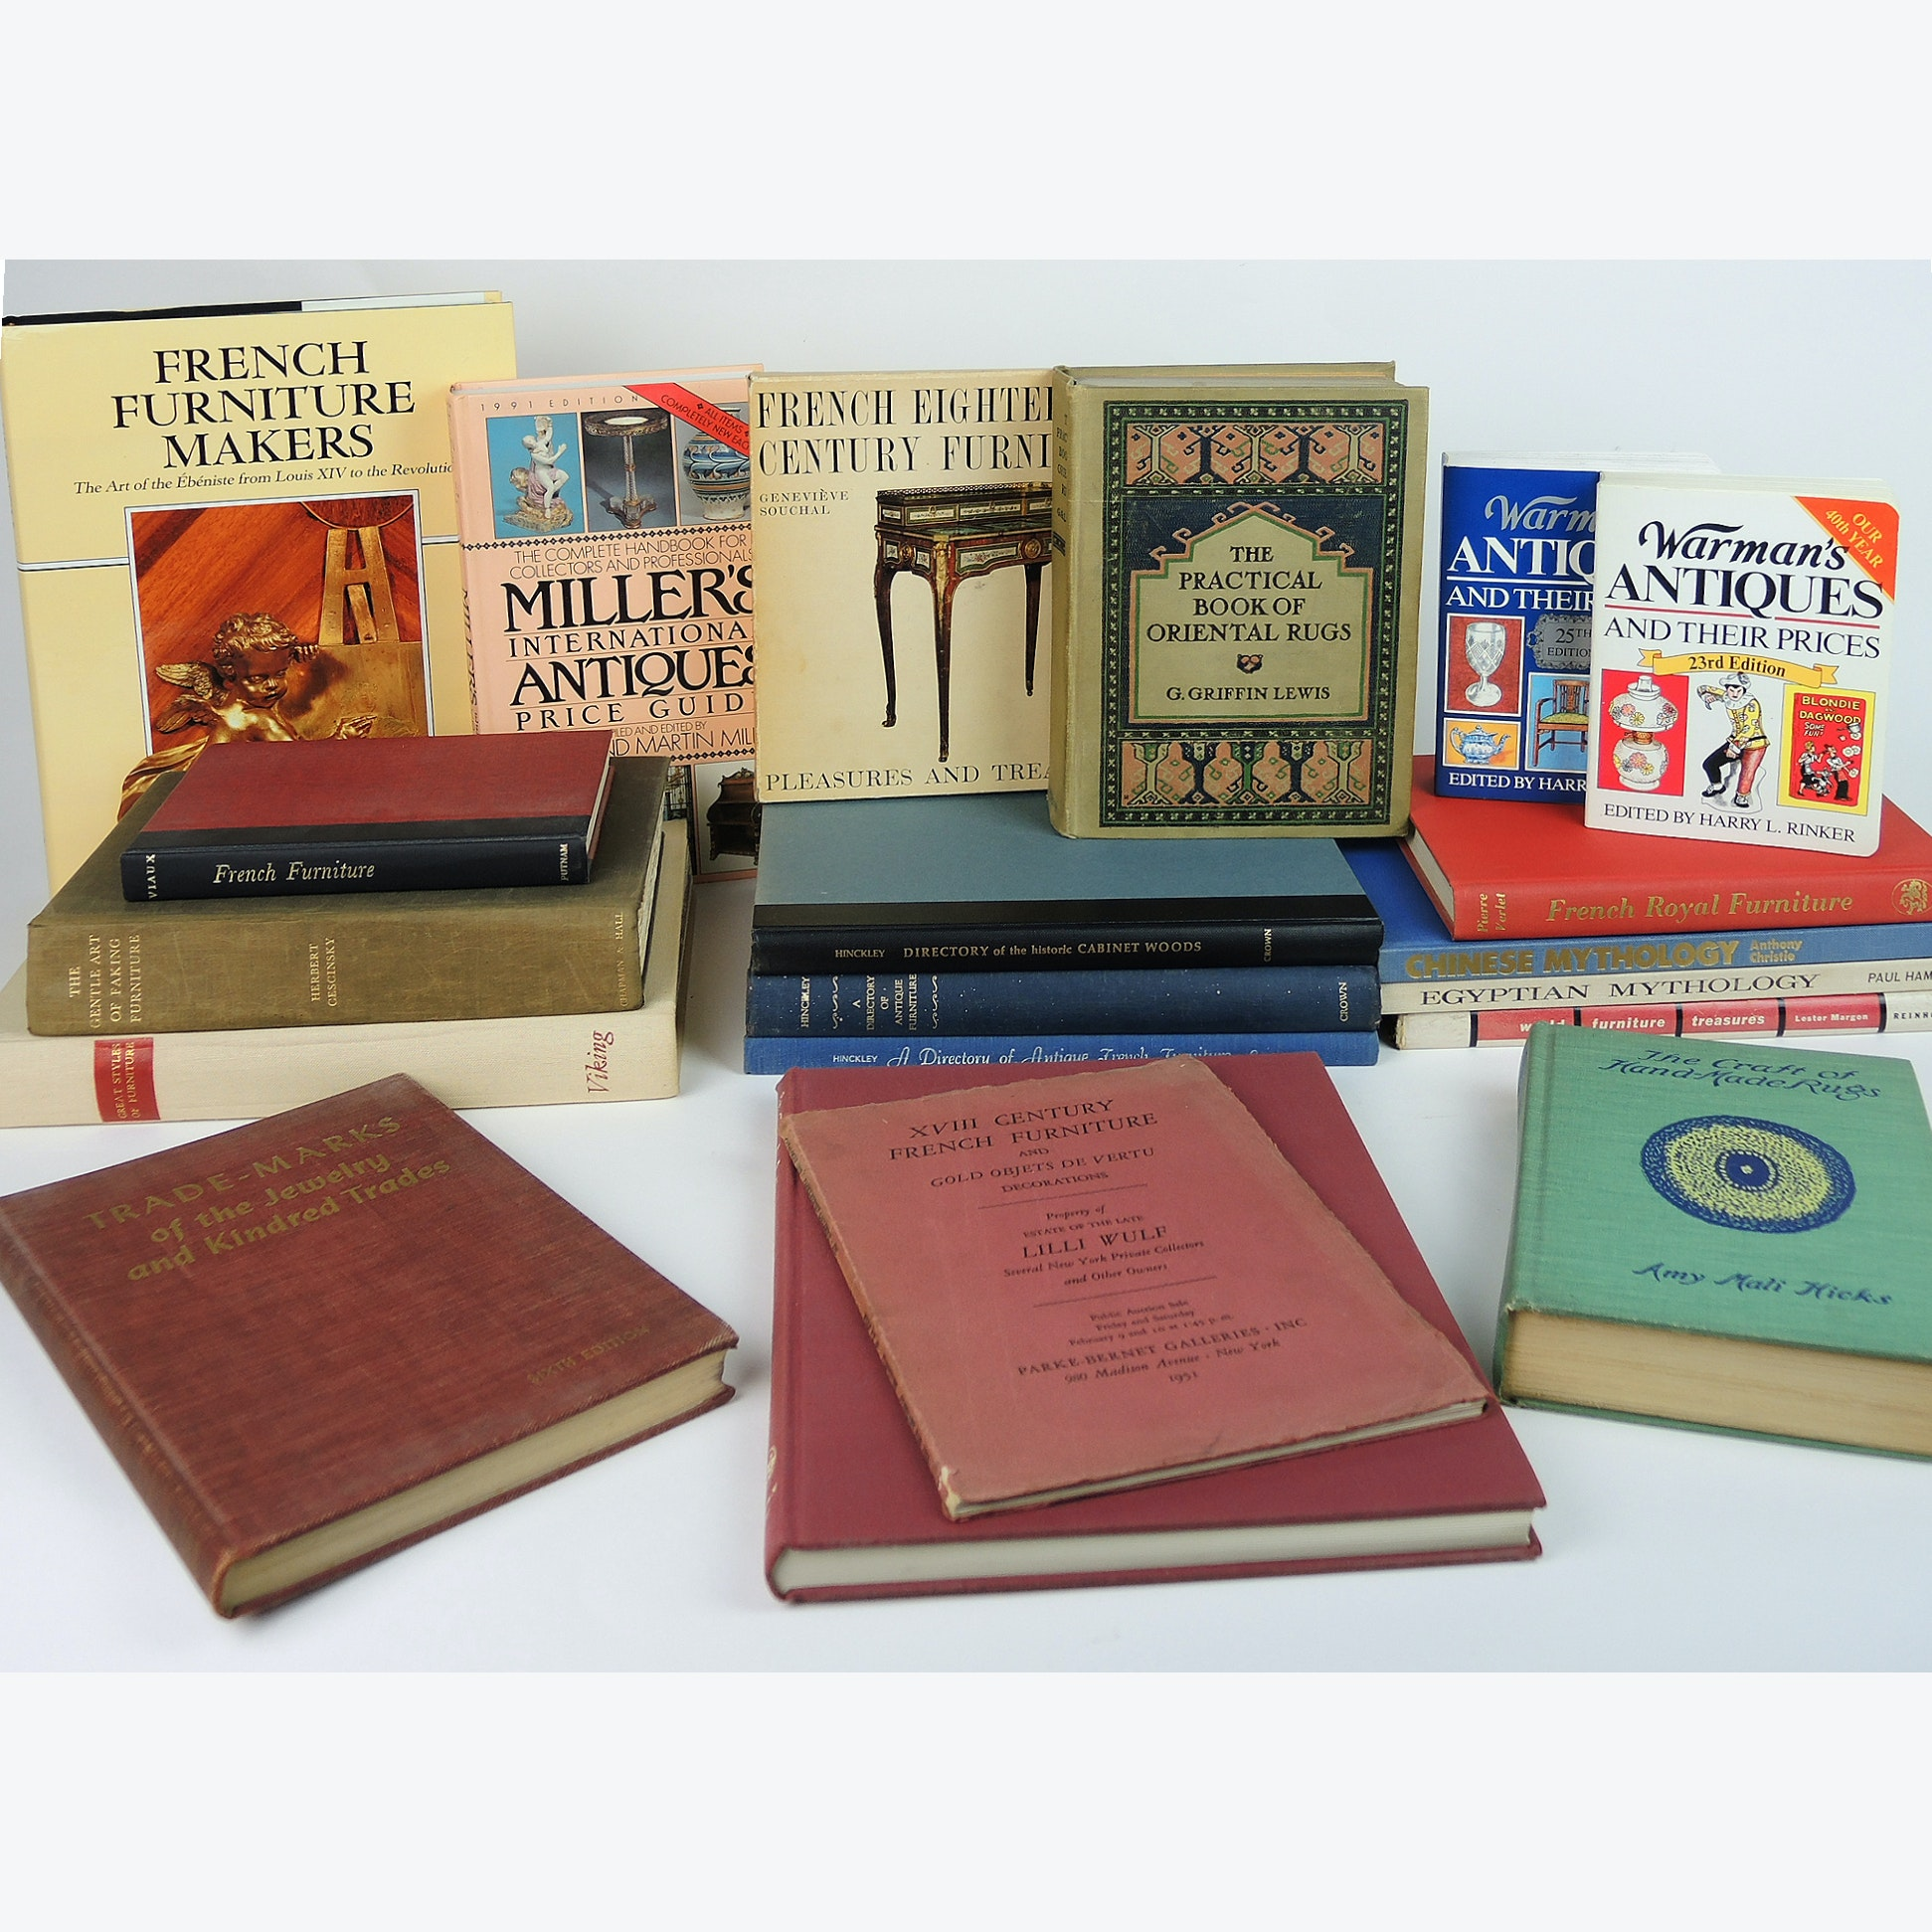 Book Collection on Antiques and Furniture